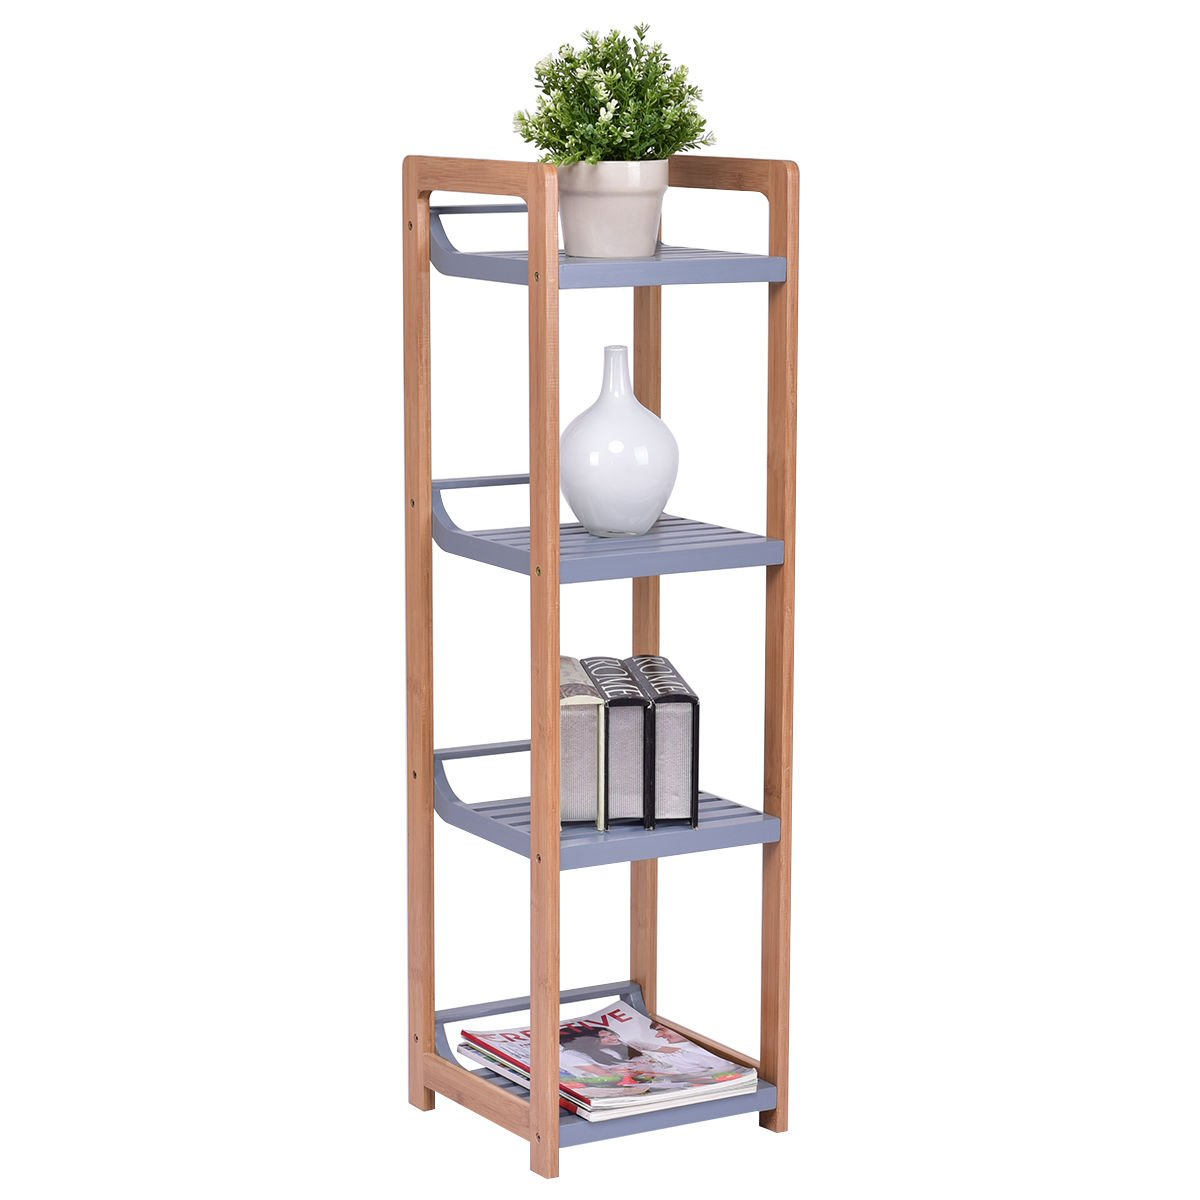 totoshop Multifunction Storage Tower Rack Shelving Shelf Units Stand Bamboo New 4 Tier by totoshop (Image #7)